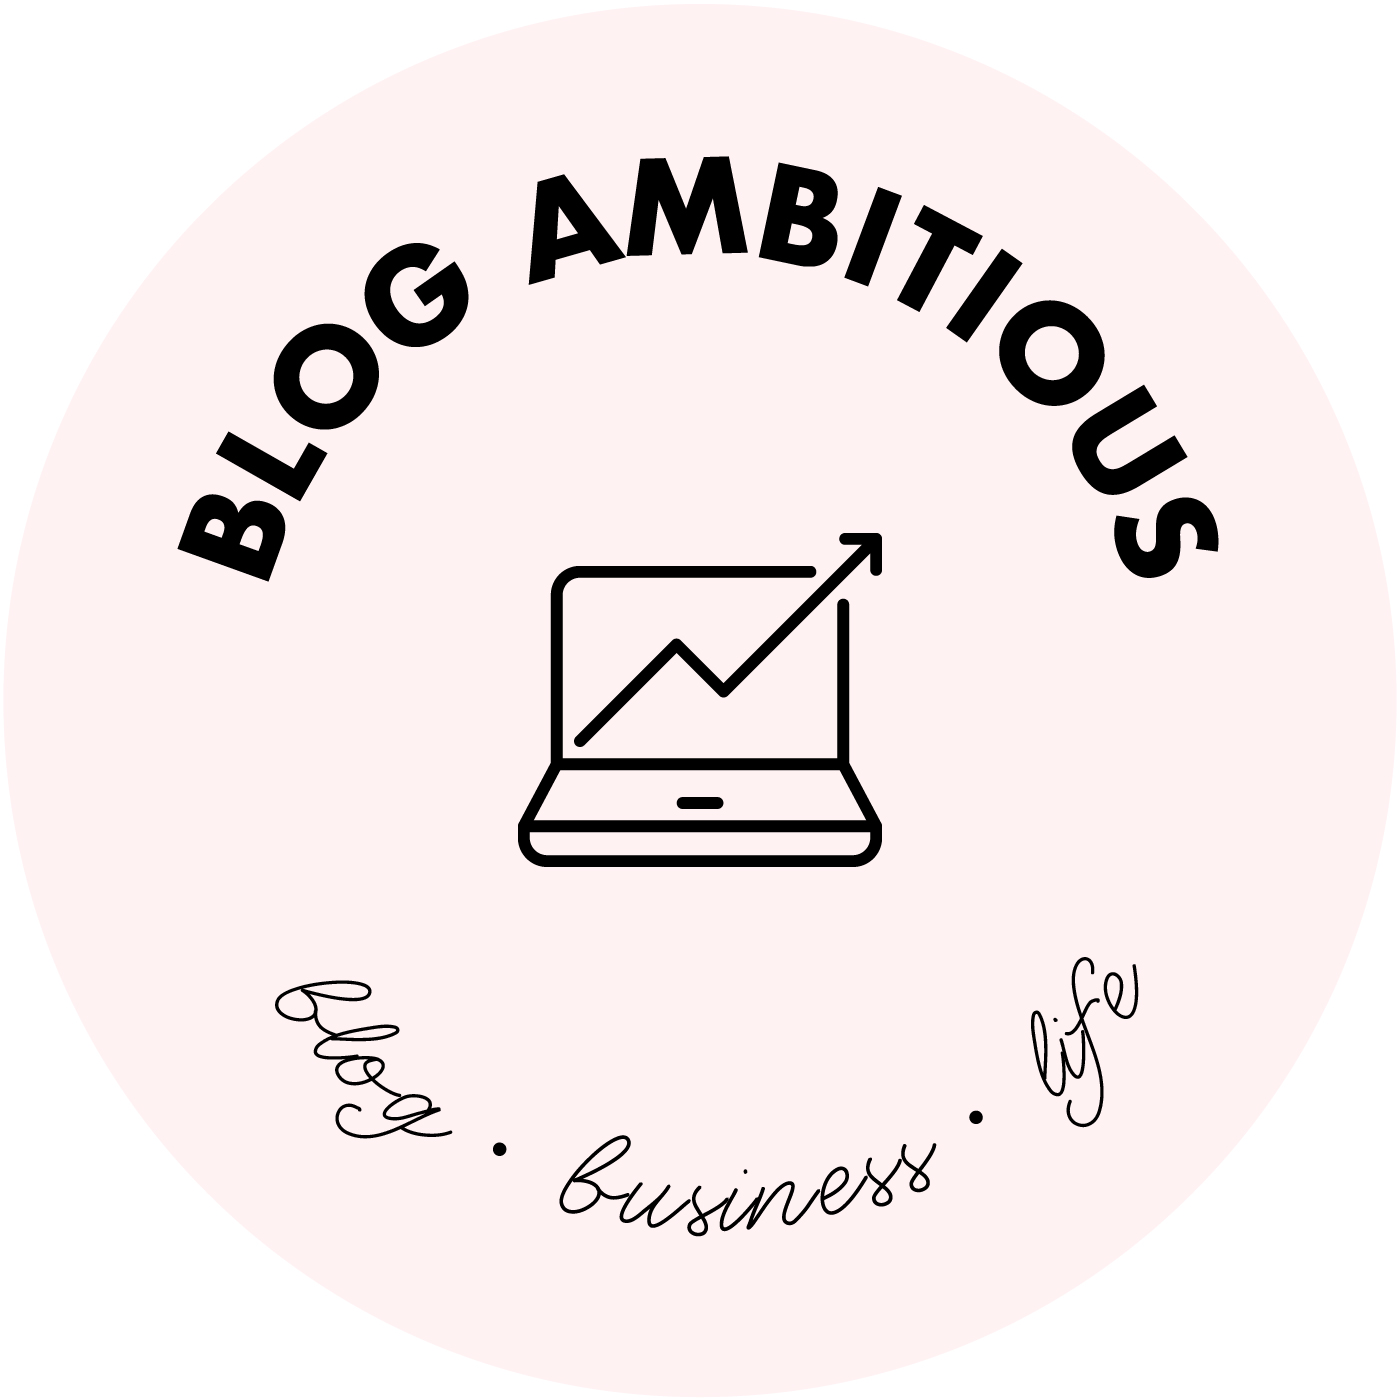 Blog Ambitious – Your guide to all things digital, blogging, starting a business, money management, and female entrepreneurship